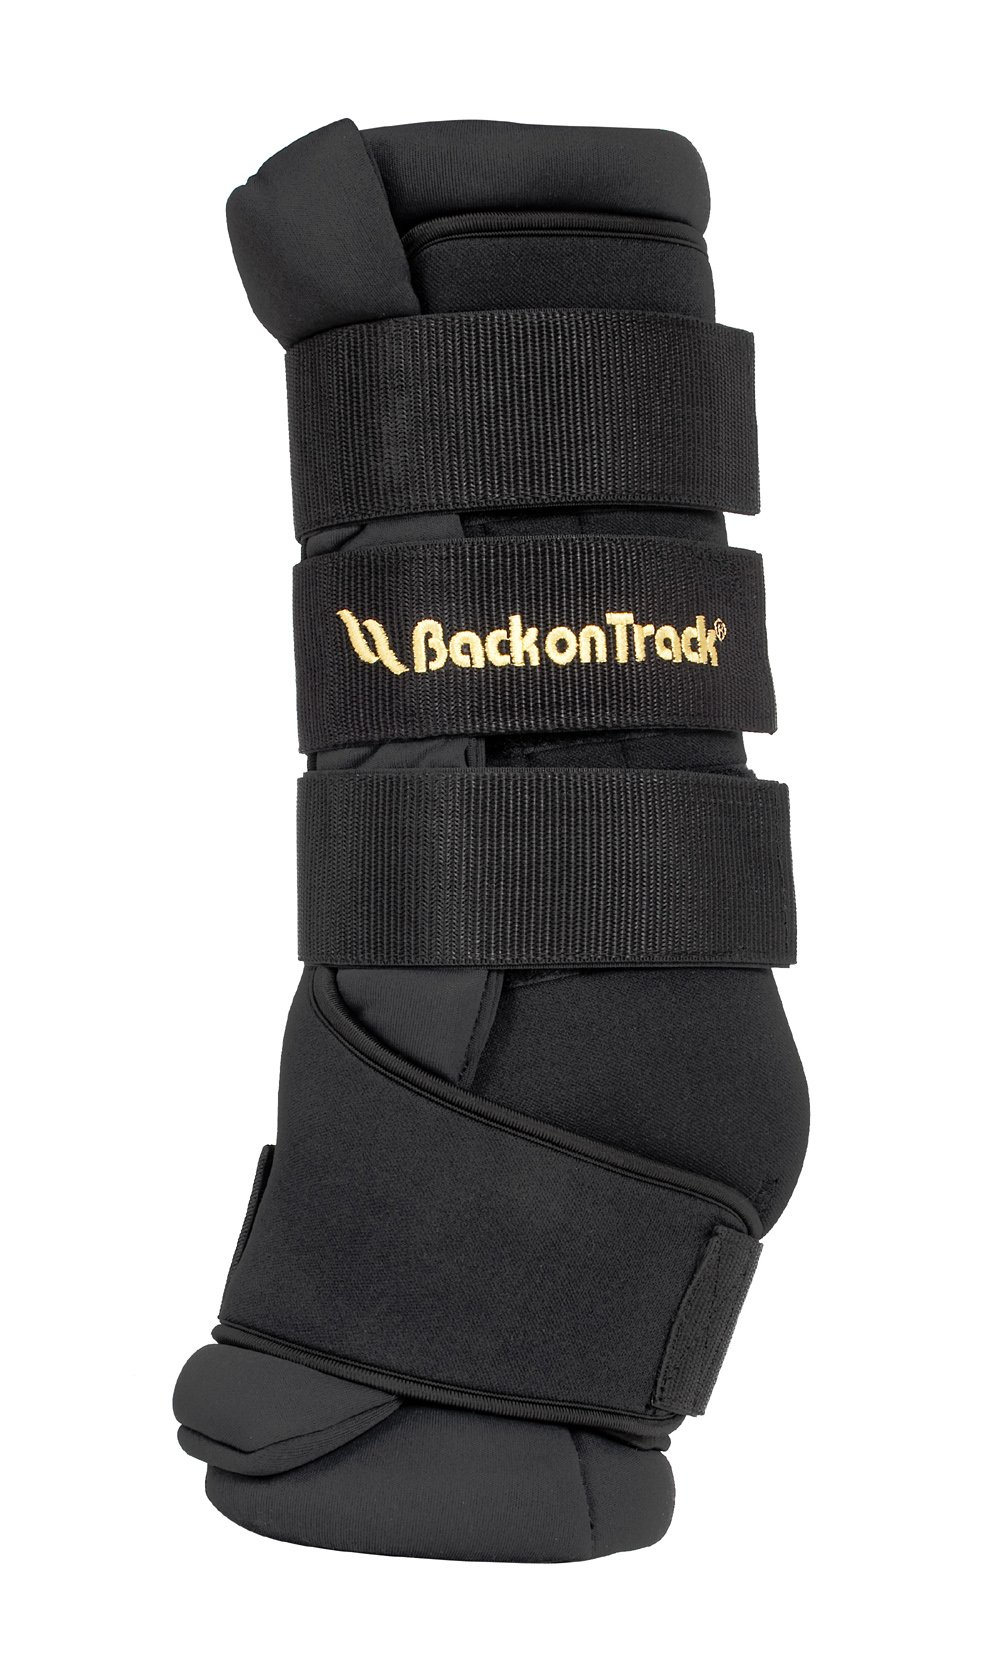 Back on Track Therapeutic 2-Piece Welltex Horse Quick Wrap, 16-Inch, Large